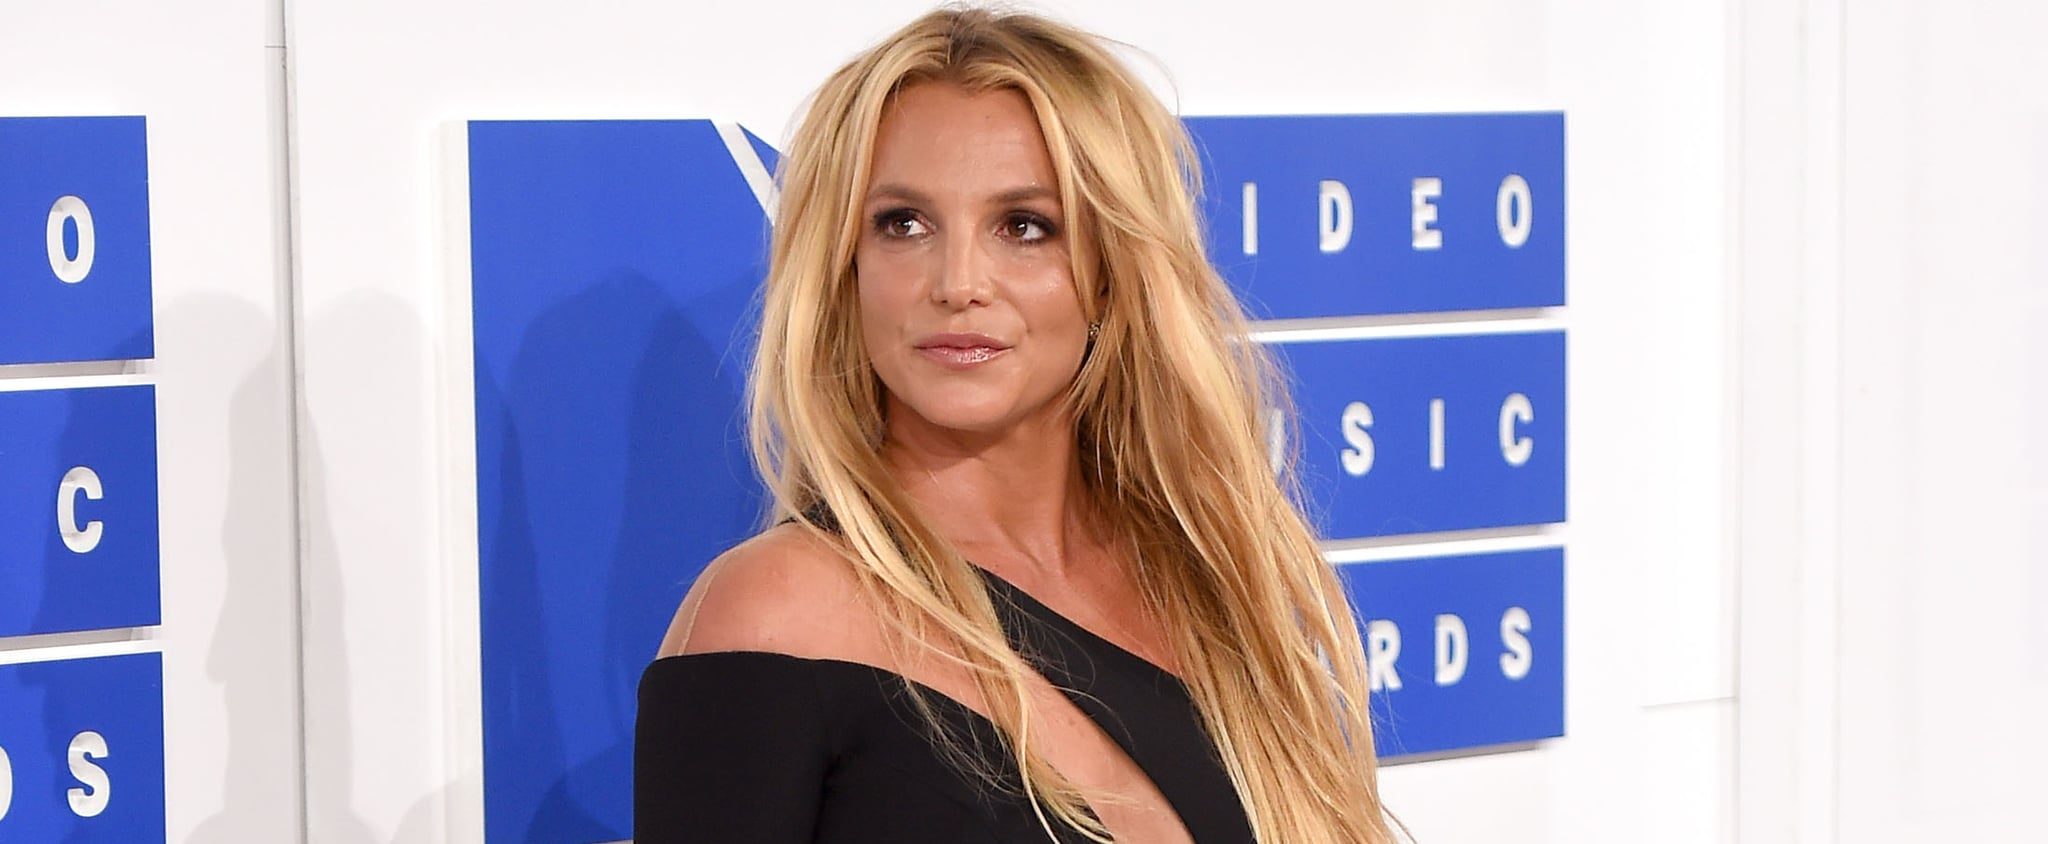 Britney Spears Addresses Conservatorship in Court Hearing